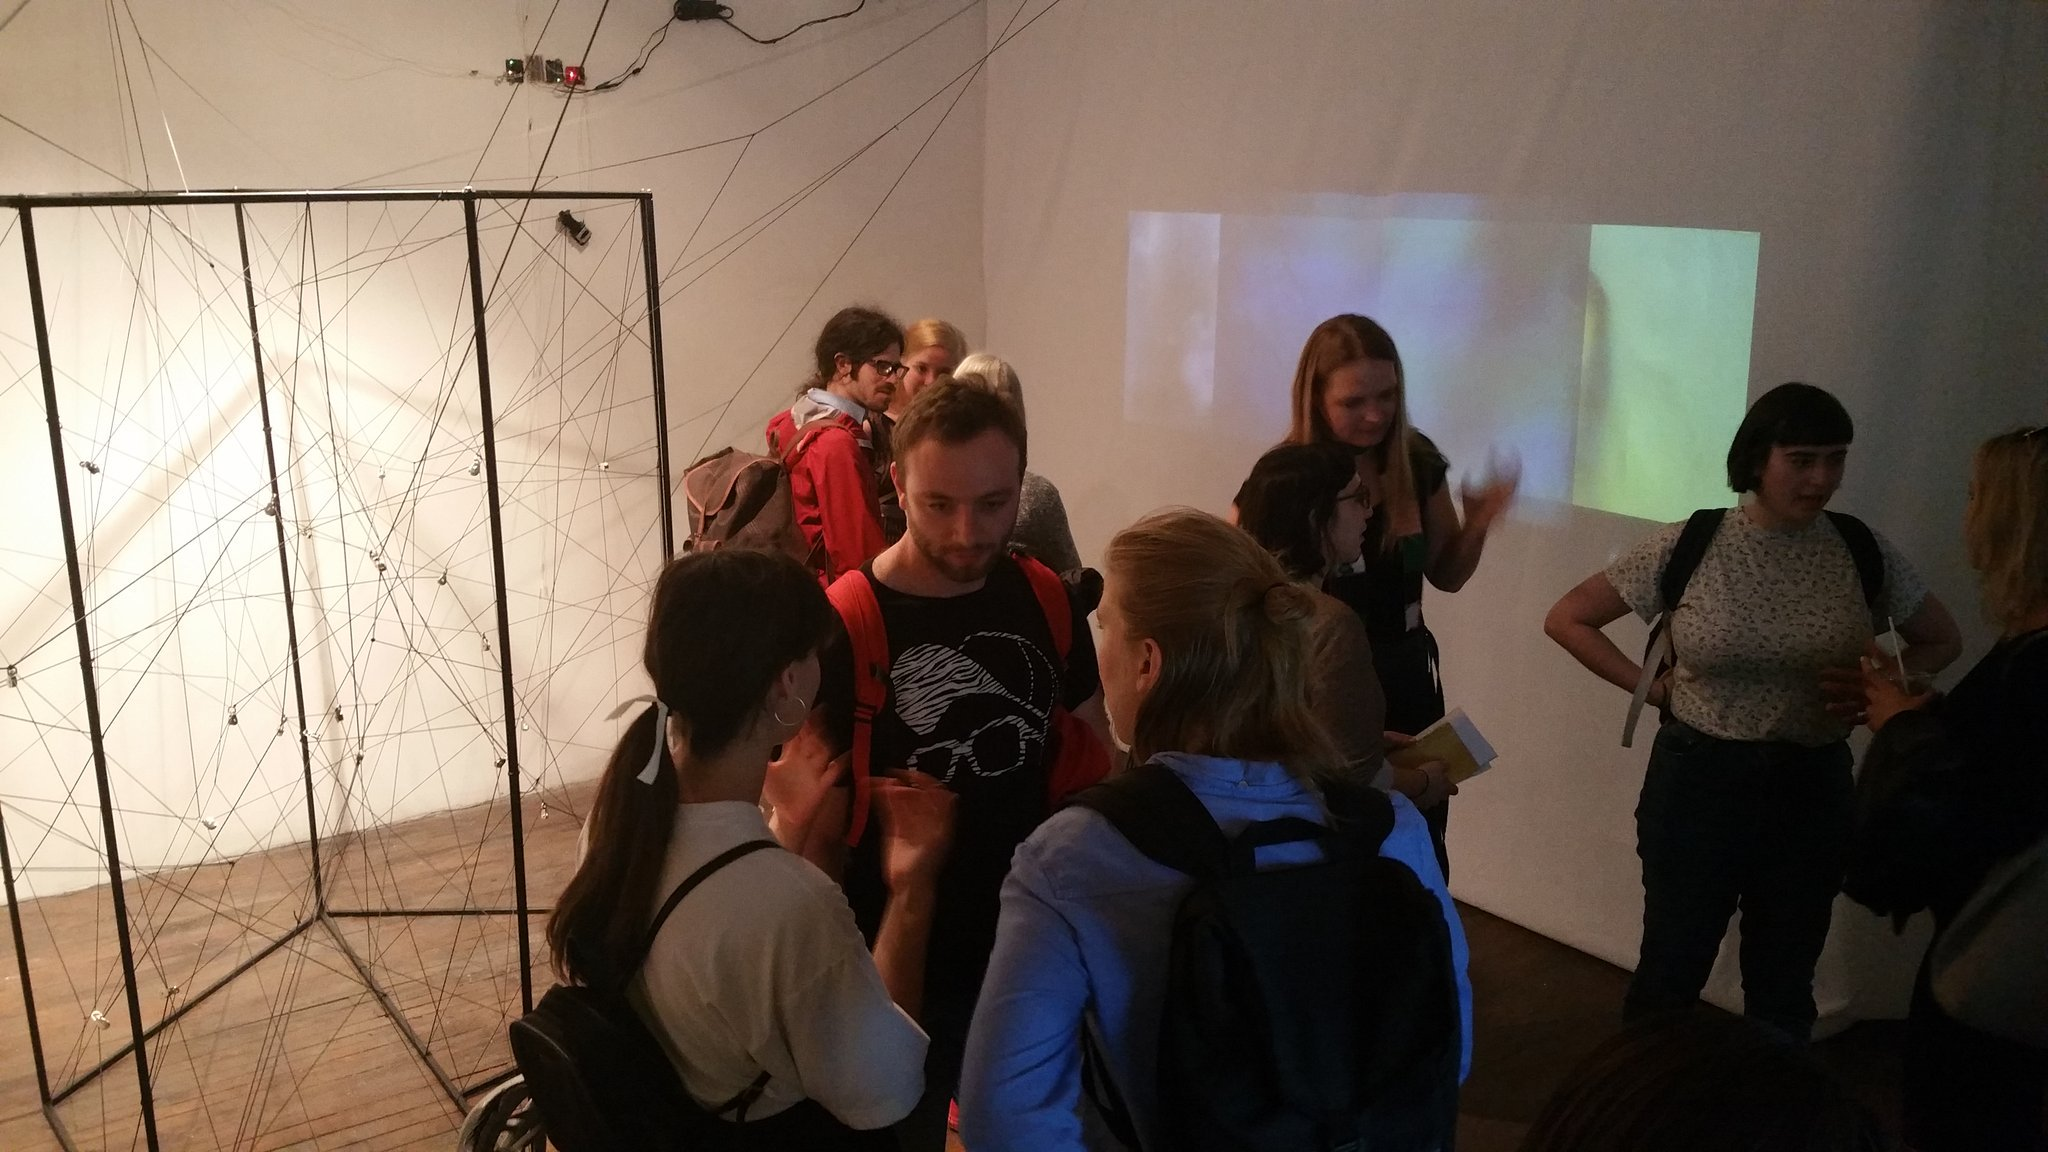 gallery goers check out sciart at the visual voice gallery